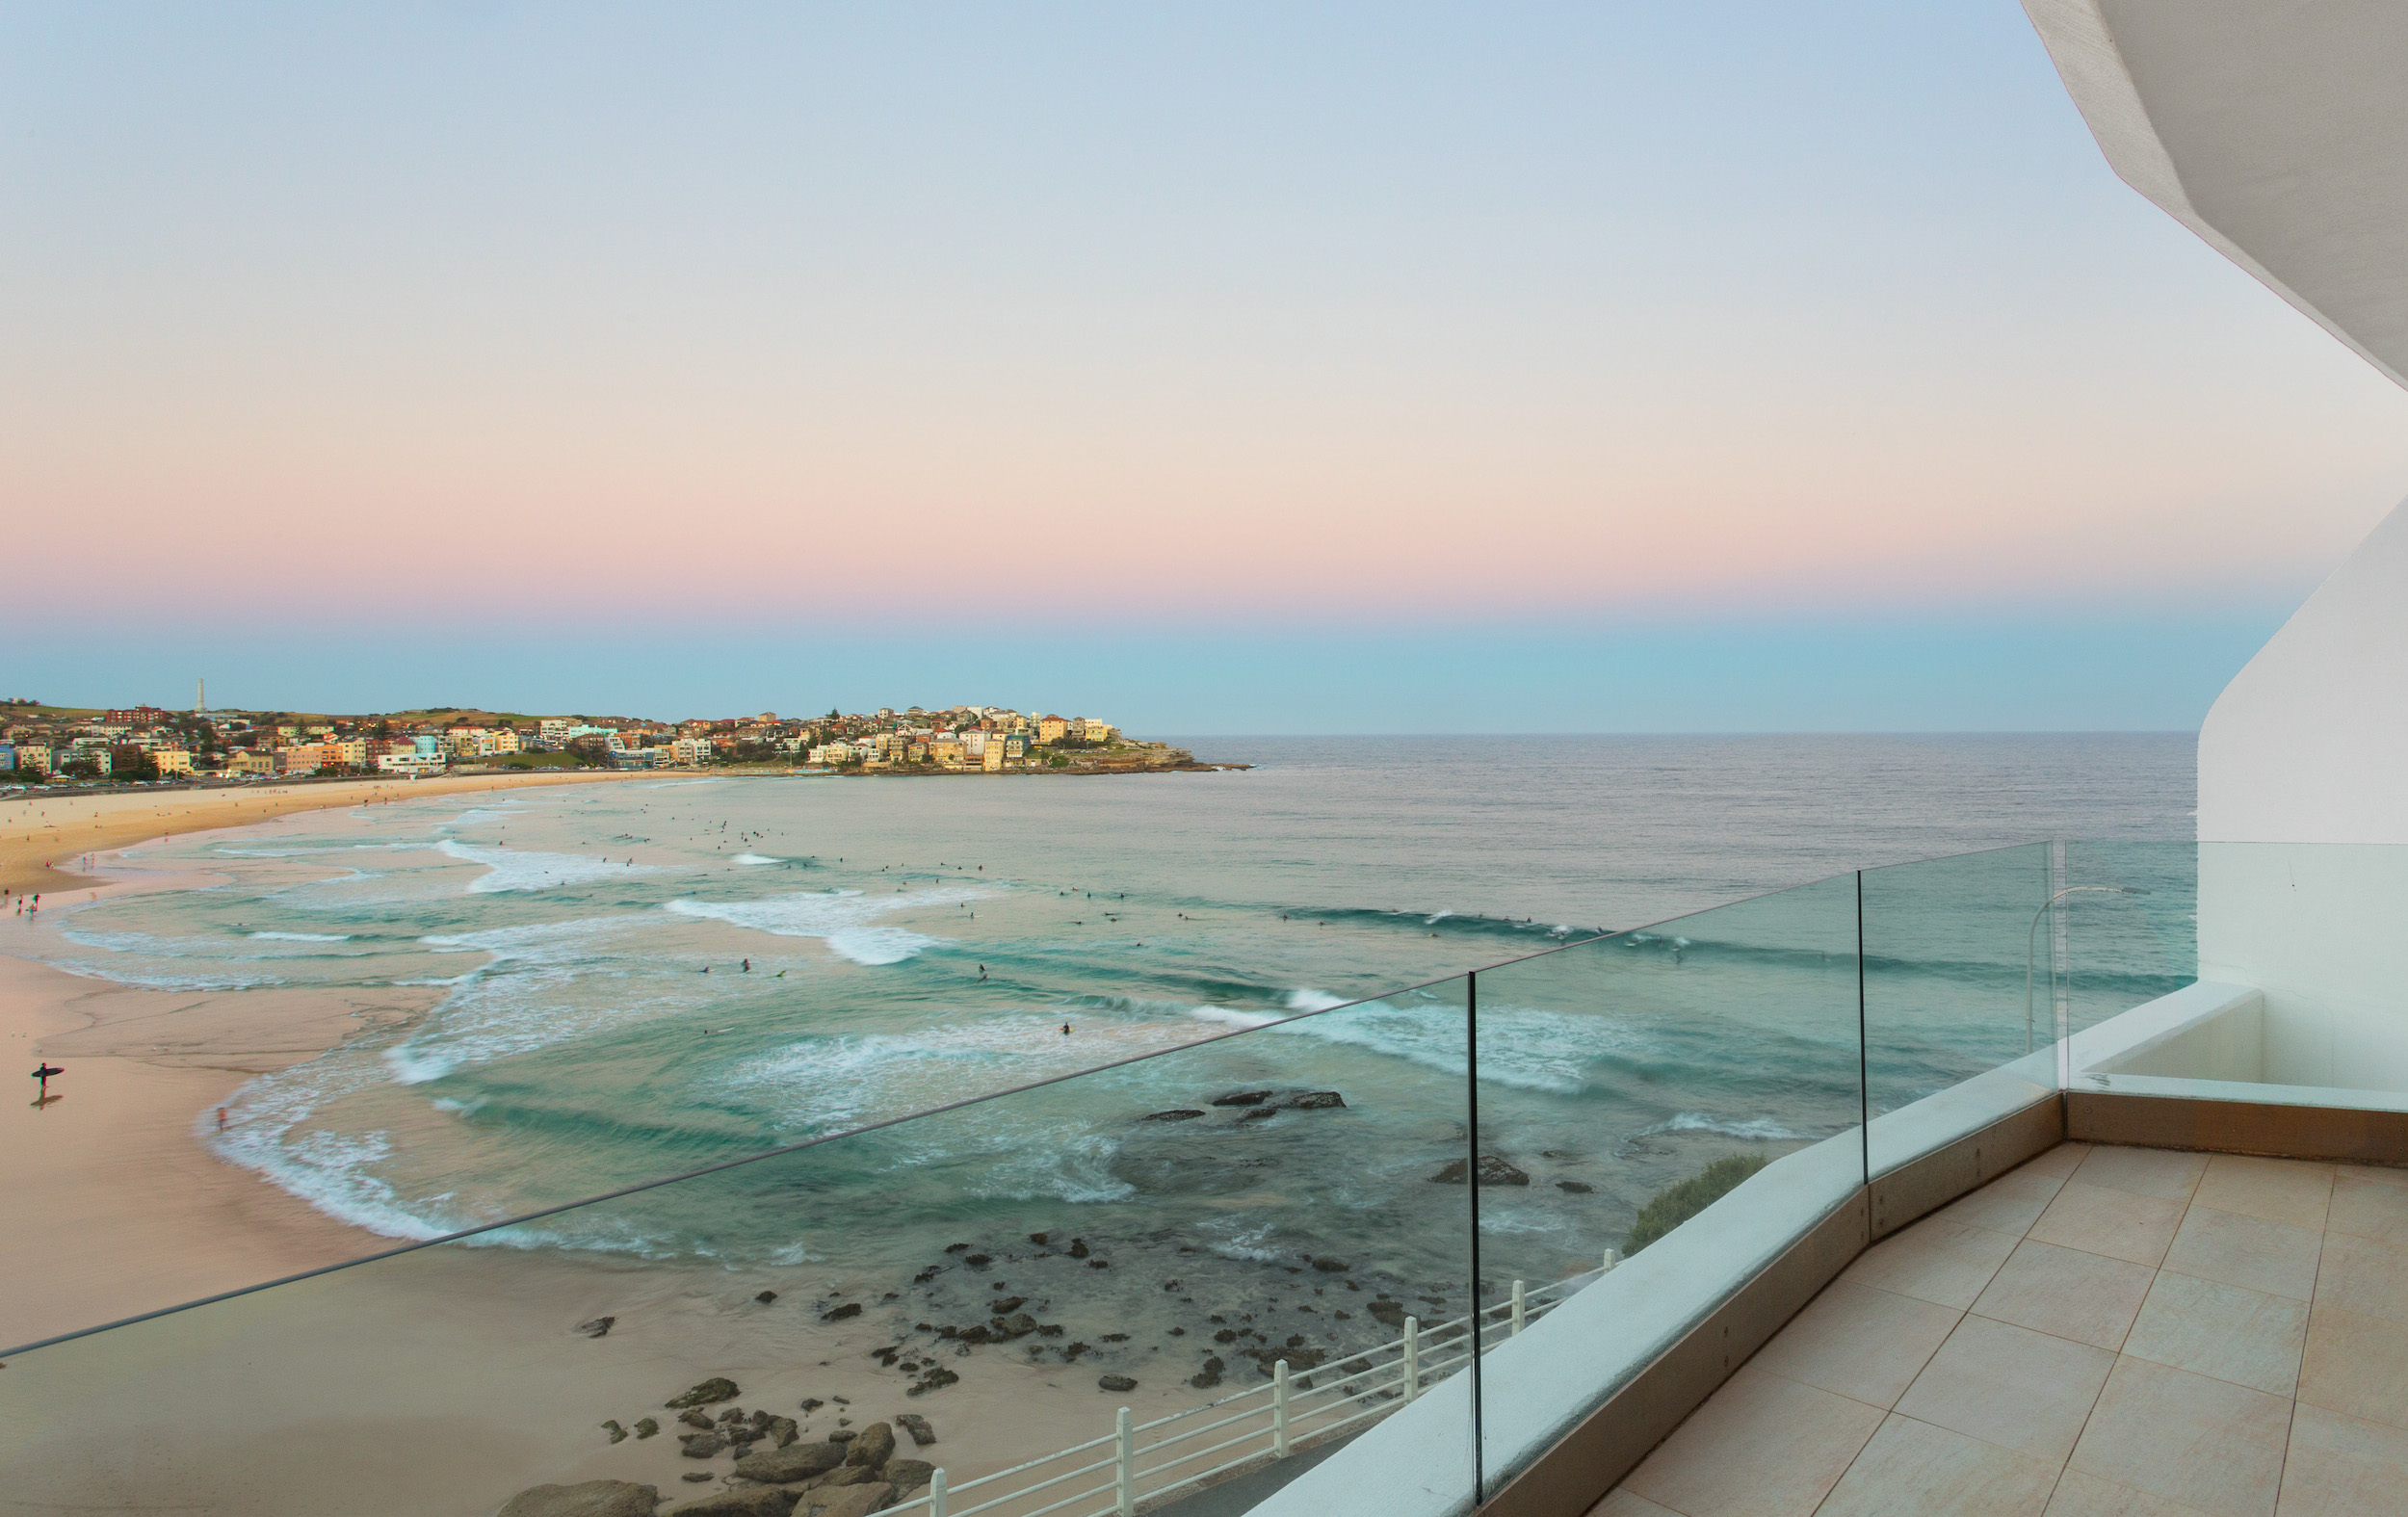 View of Bondi Beach at sunset taken from above with an orange-blue hazy sky